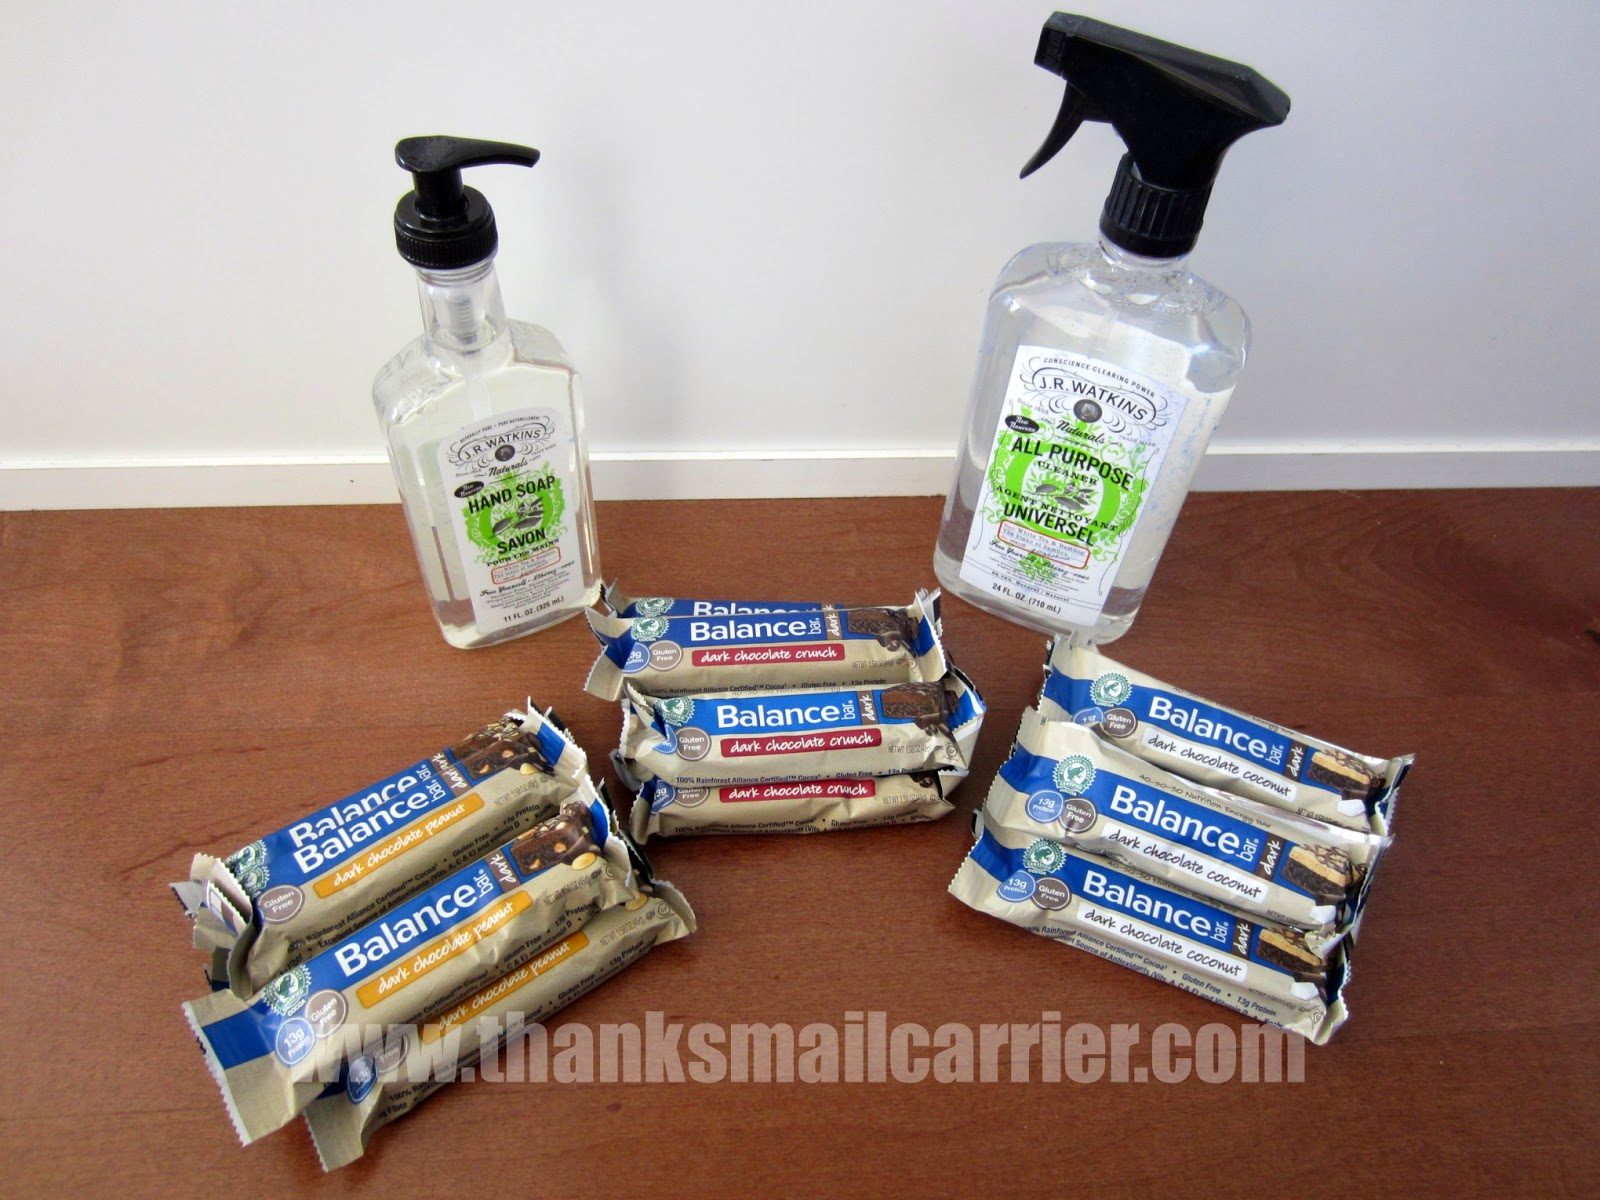 Balance Bar spring cleaning giveaway